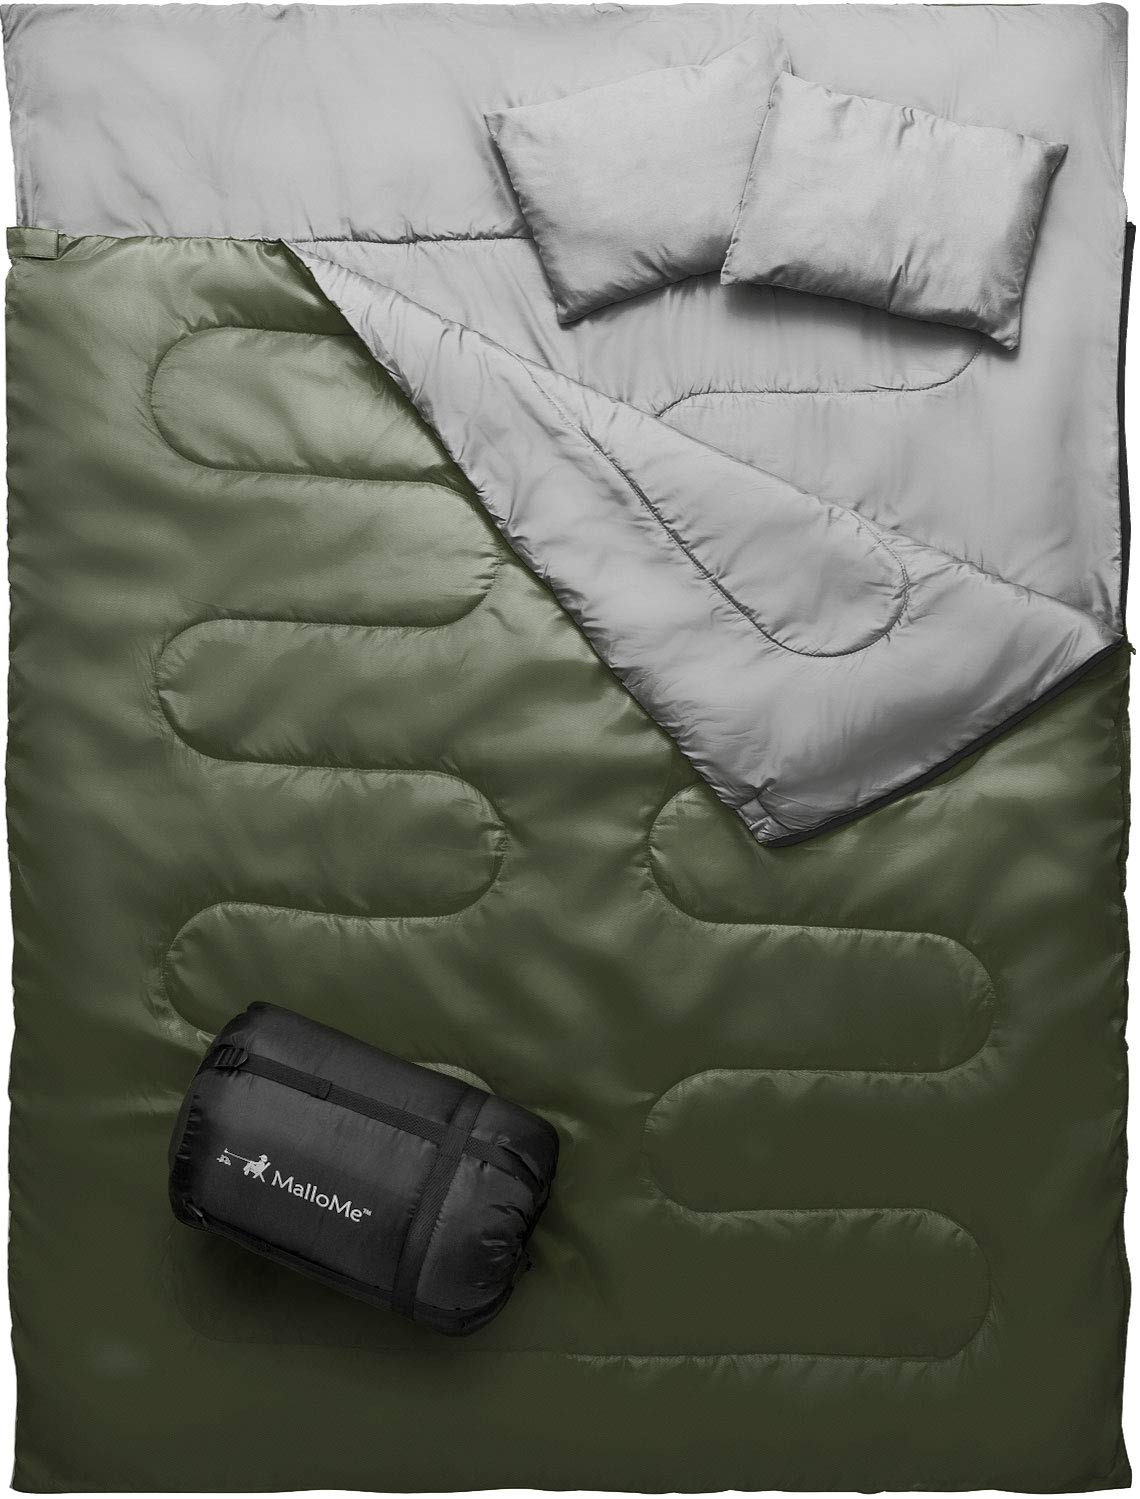 MalloMe Double Camping Sleeping Bag - 3 Season Warm & Cool Weather - Summer, Spring, Fall, Lightweight, Waterproof For Adults & Kids - Camping Gear Equipment, Traveling, and Outdoors - 2 Free Pillows! by MalloMe